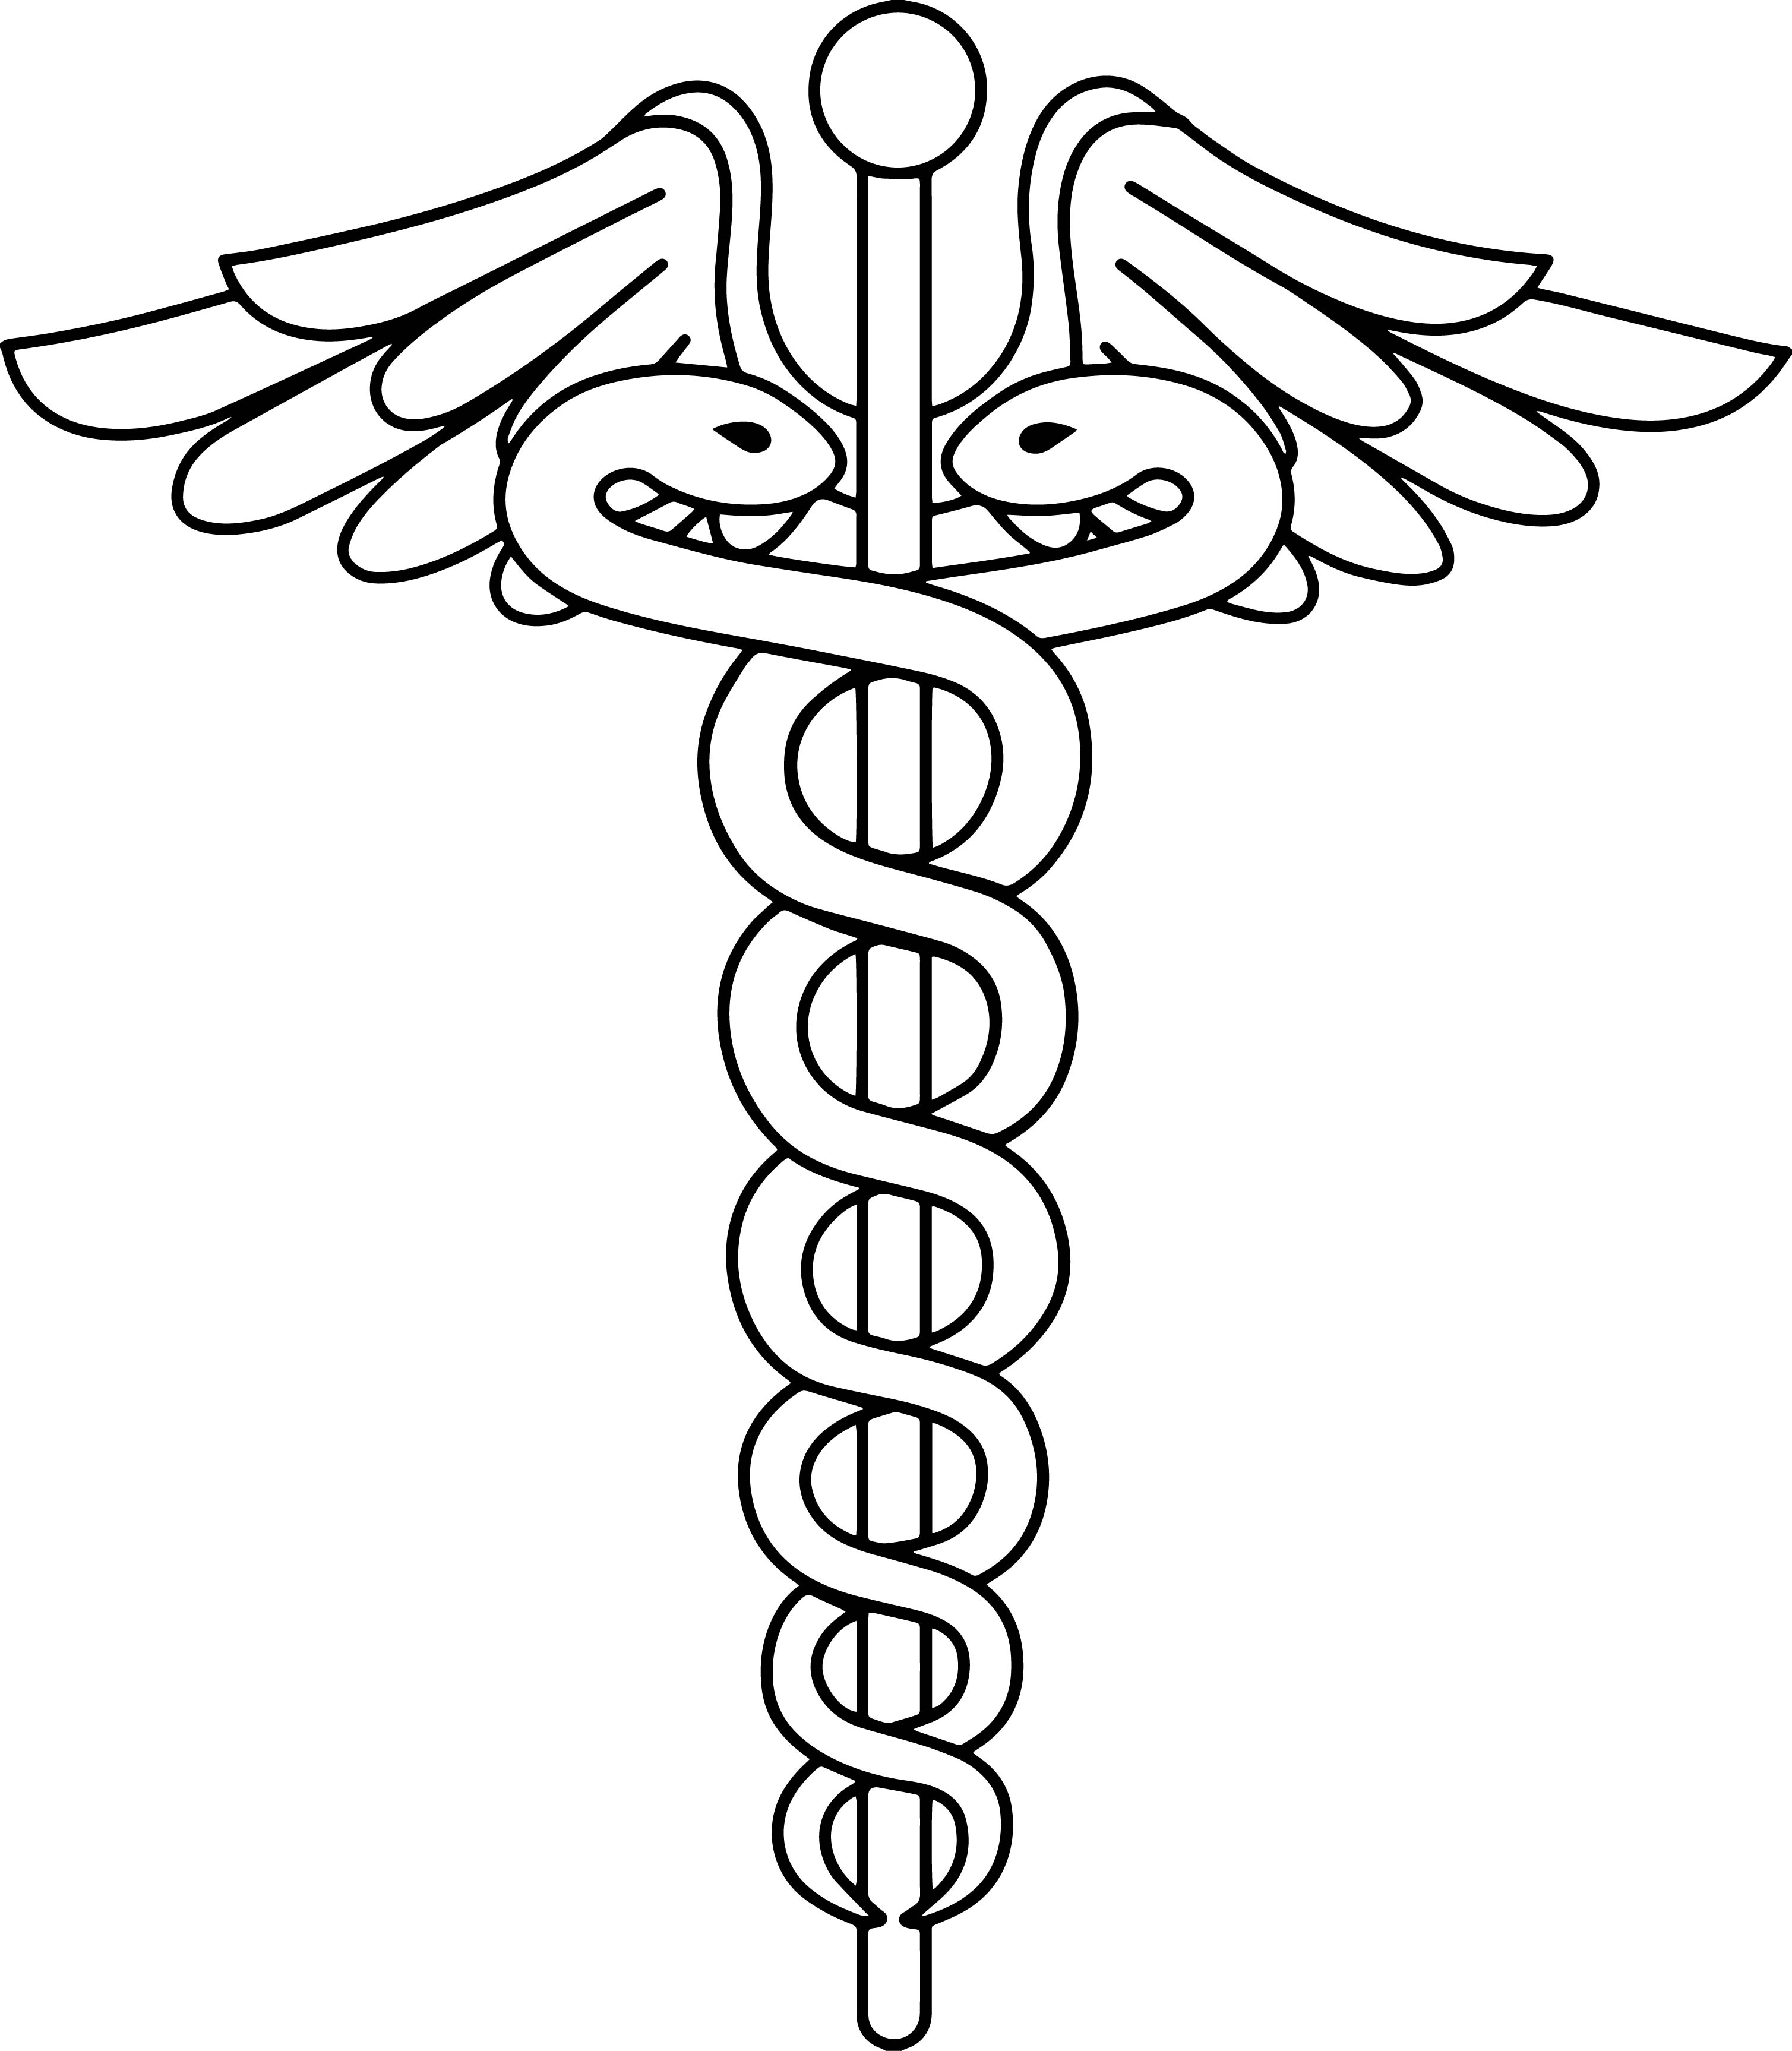 medical coloring pages - photo#22